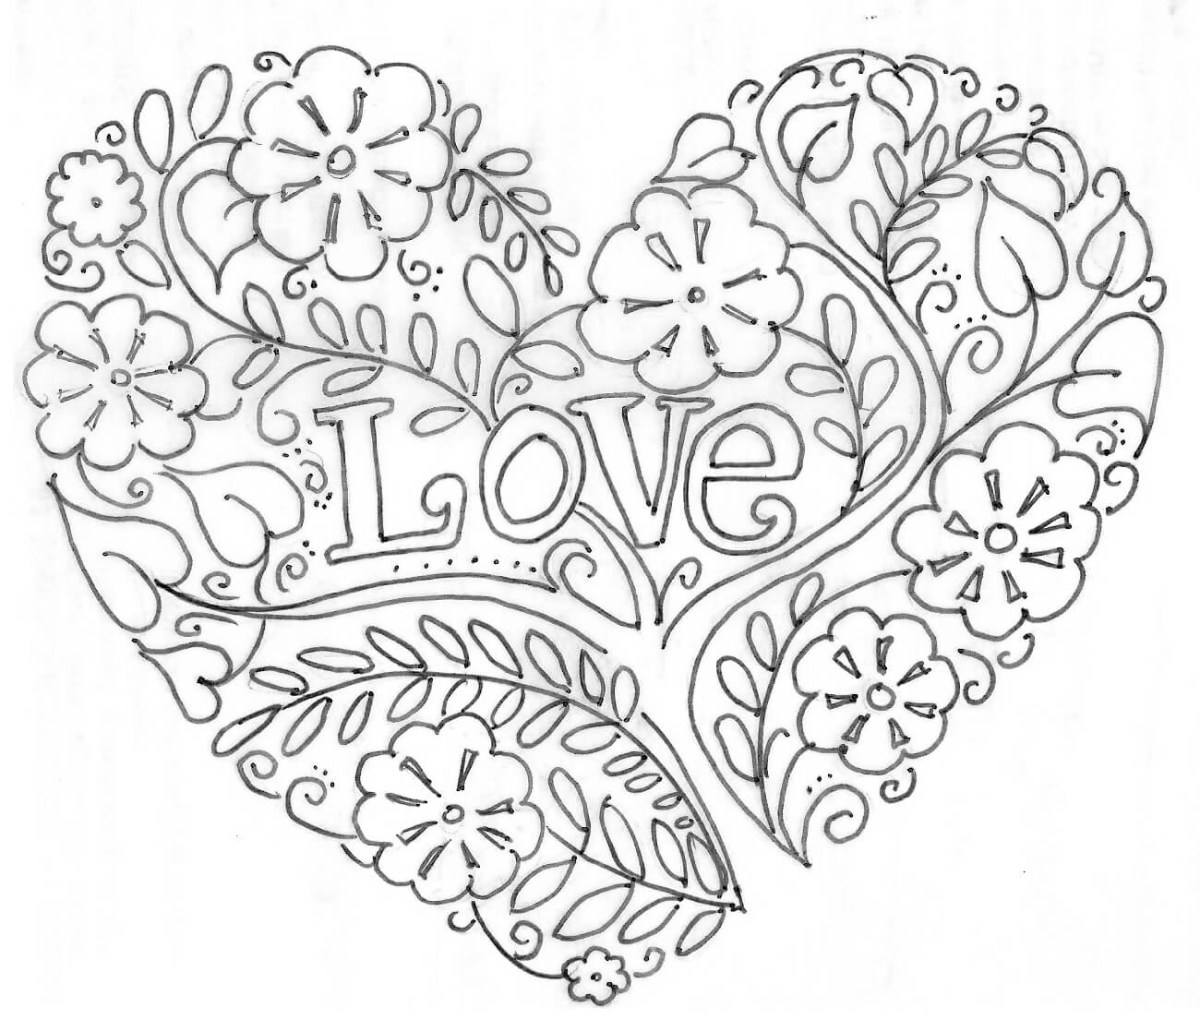 Coloring Pages For Adults Love | Pusat Hobi